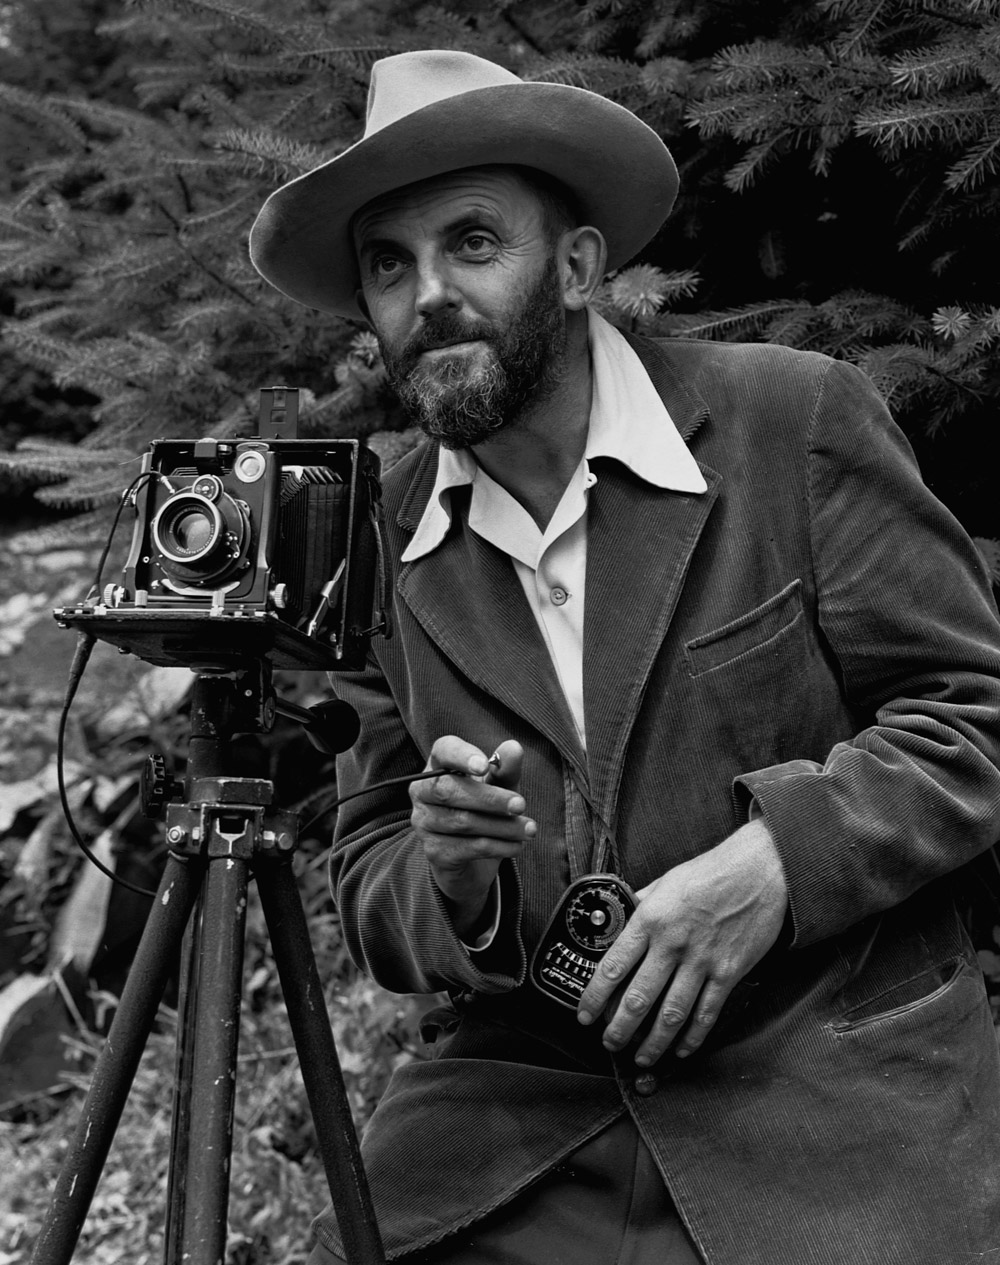 Ansel_Adams_and_camera-1